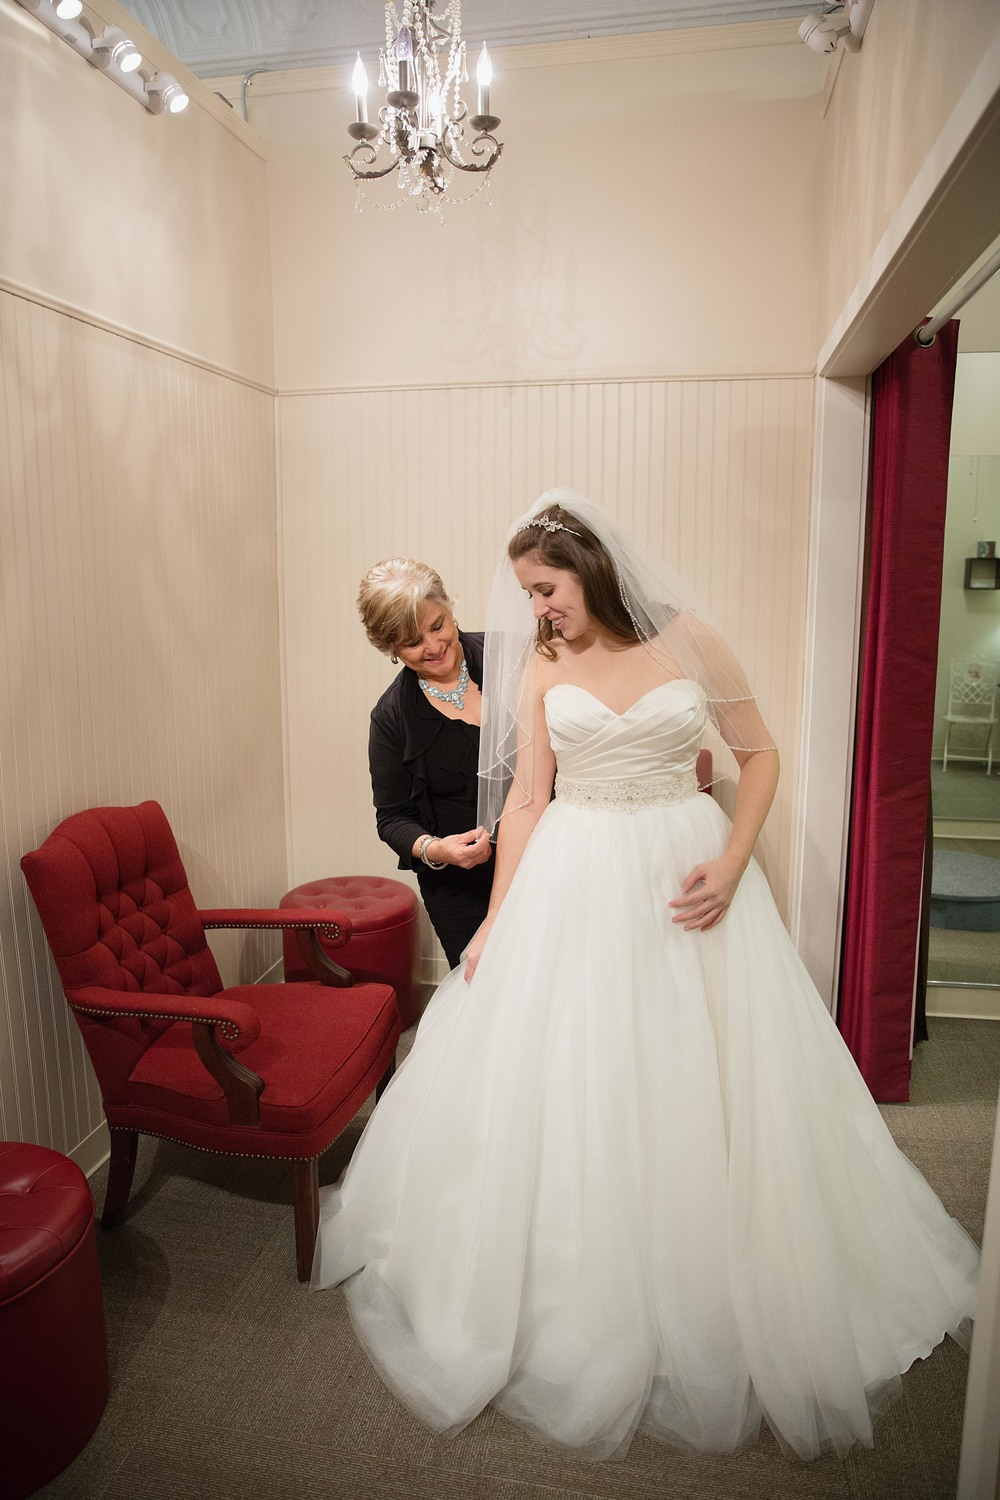 You will then move to a spacious, private area, along with any family or friends accompanying you, where you will be assisted in trying on the gowns you've selected until you find the perfect one!